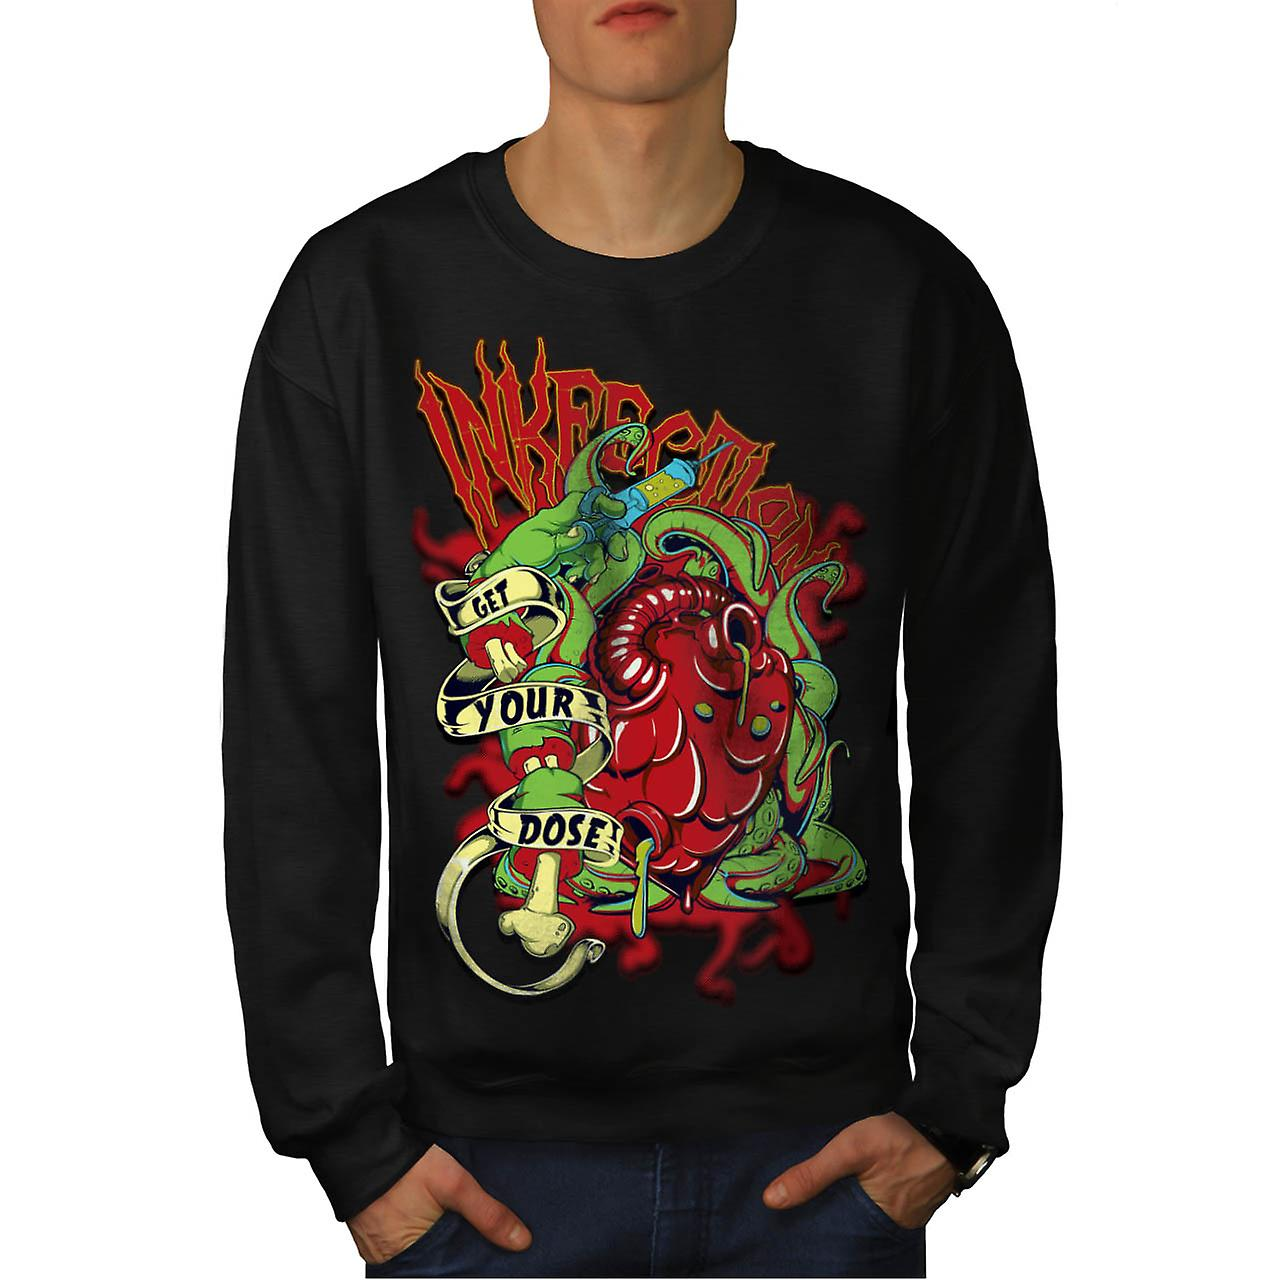 Ink Infection Tattoo Death Dose Men Black Sweatshirt | Wellcoda